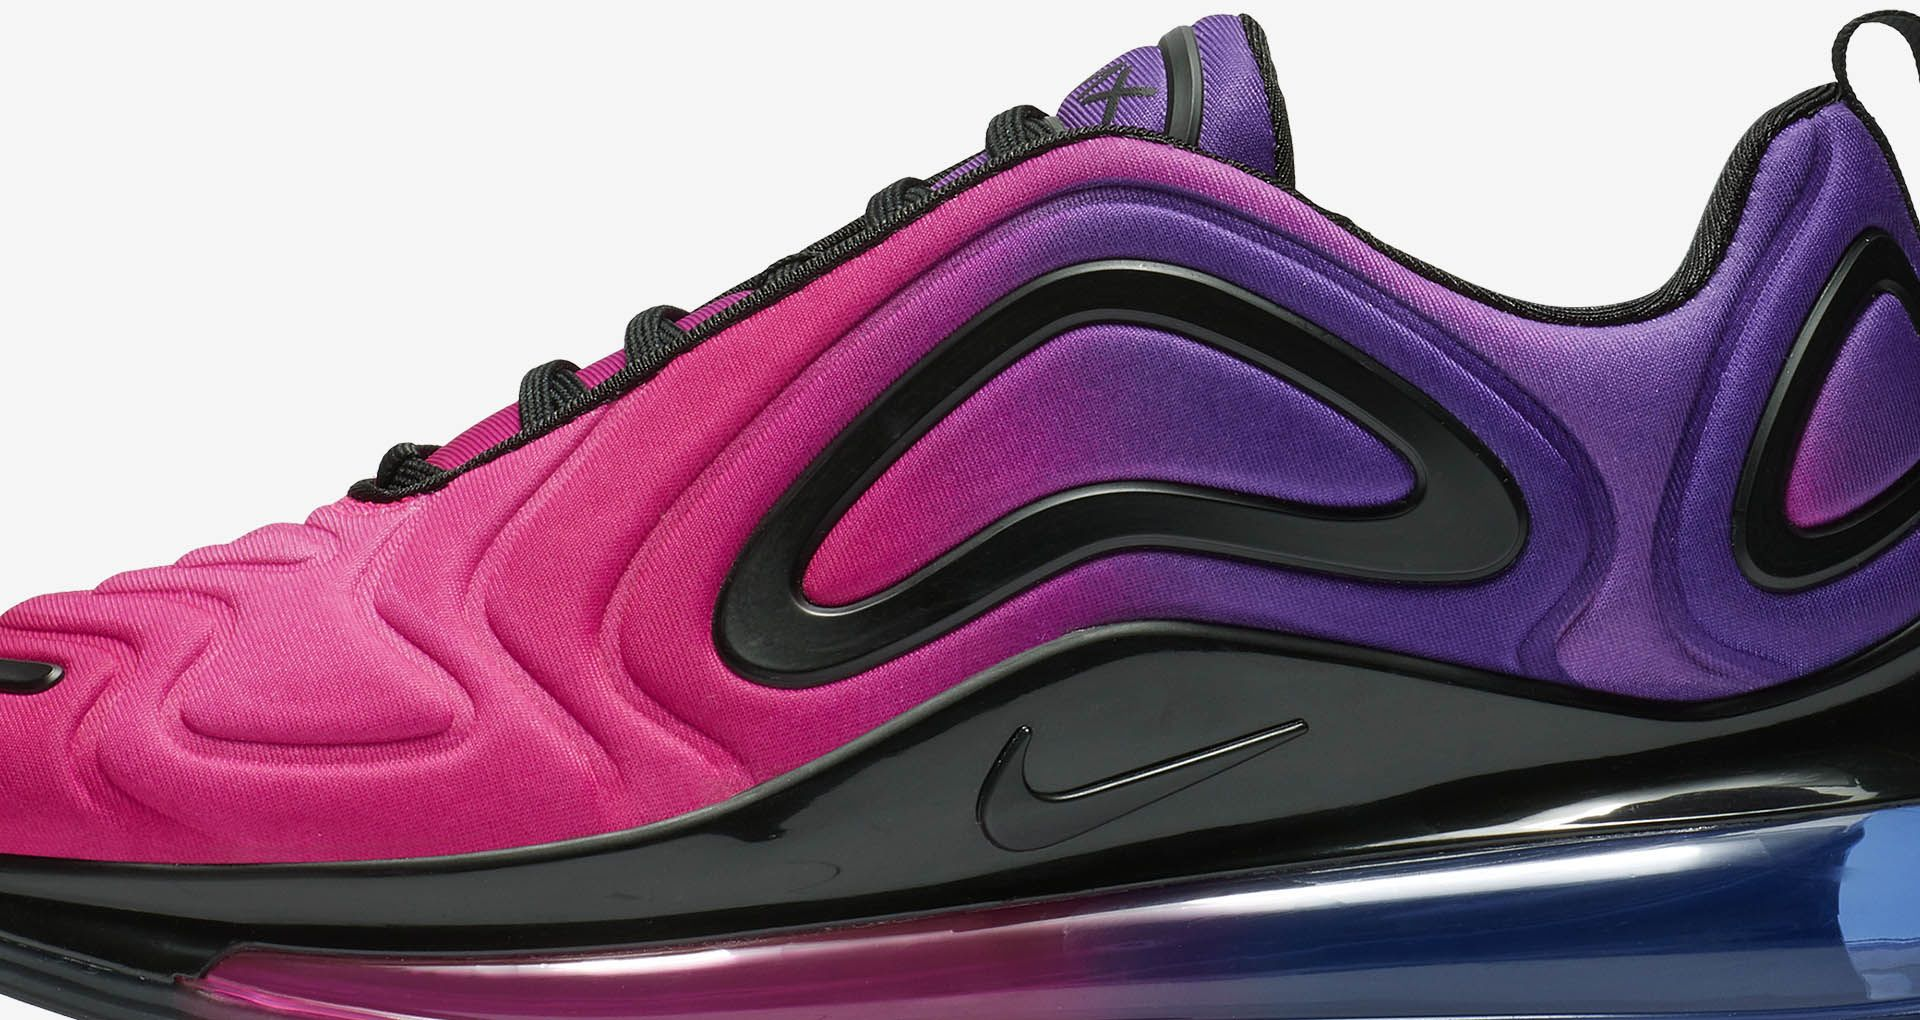 Details about New Women's Air Max 720 Sunset Hyper Pink Hyper Purple Blue and Black AR9293 500